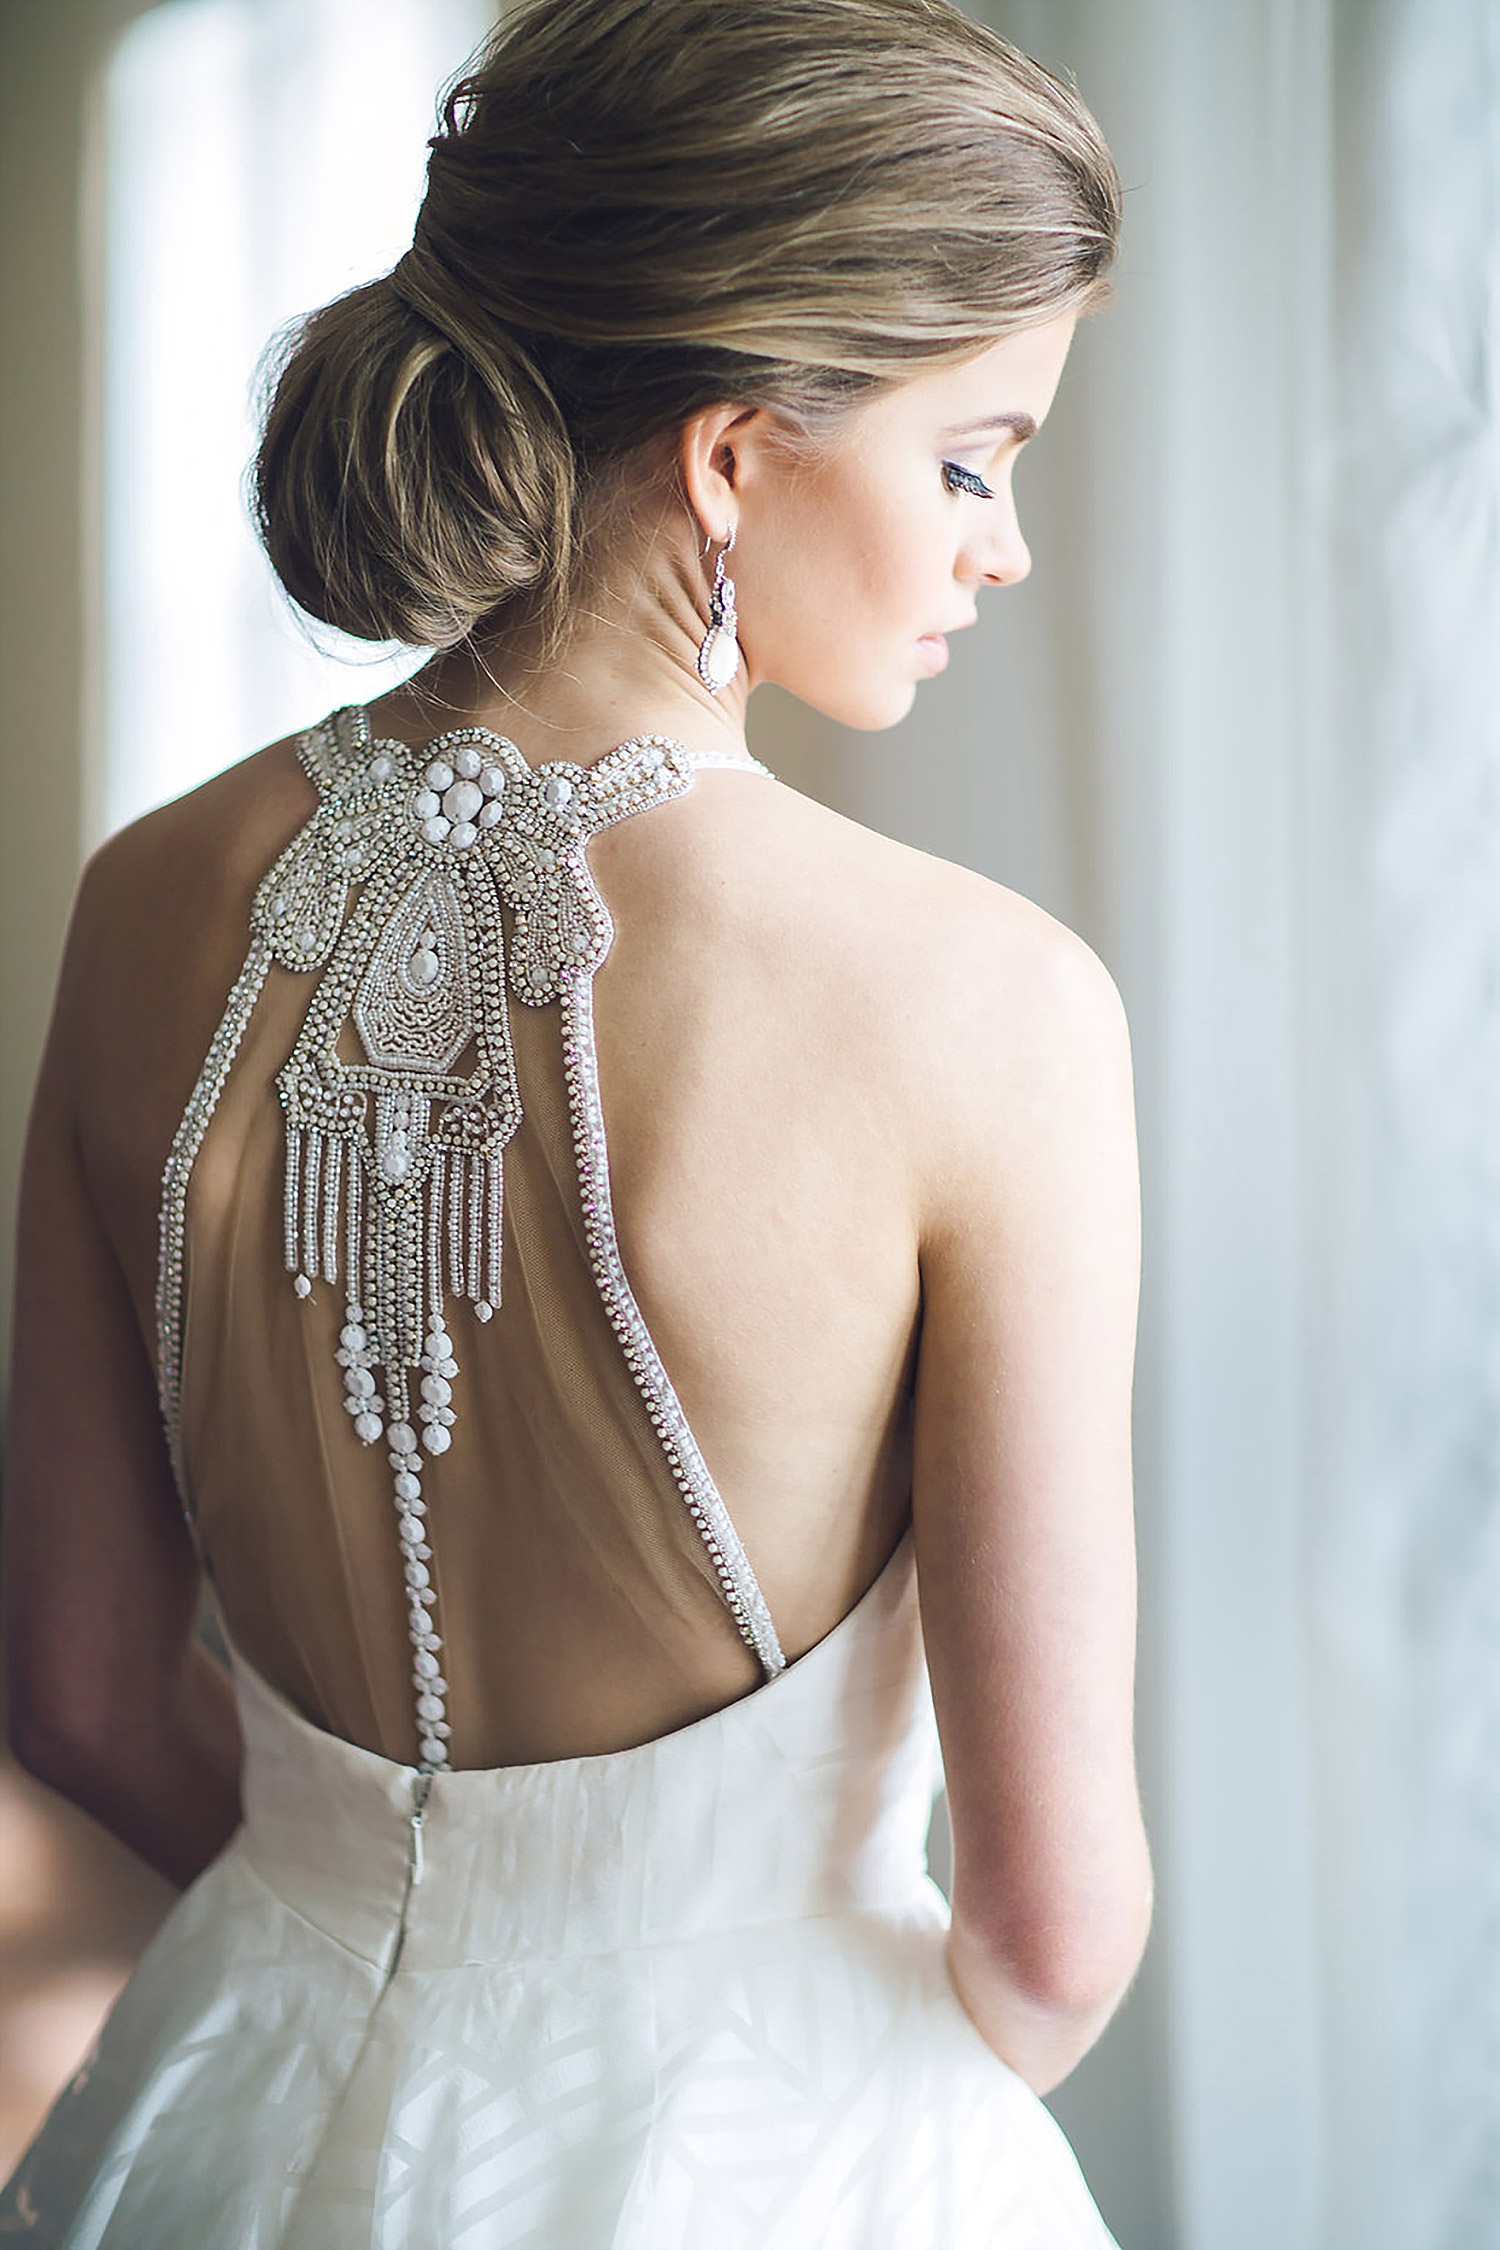 Bride wearing Haley Paige dress with a crystal back with a southern updo